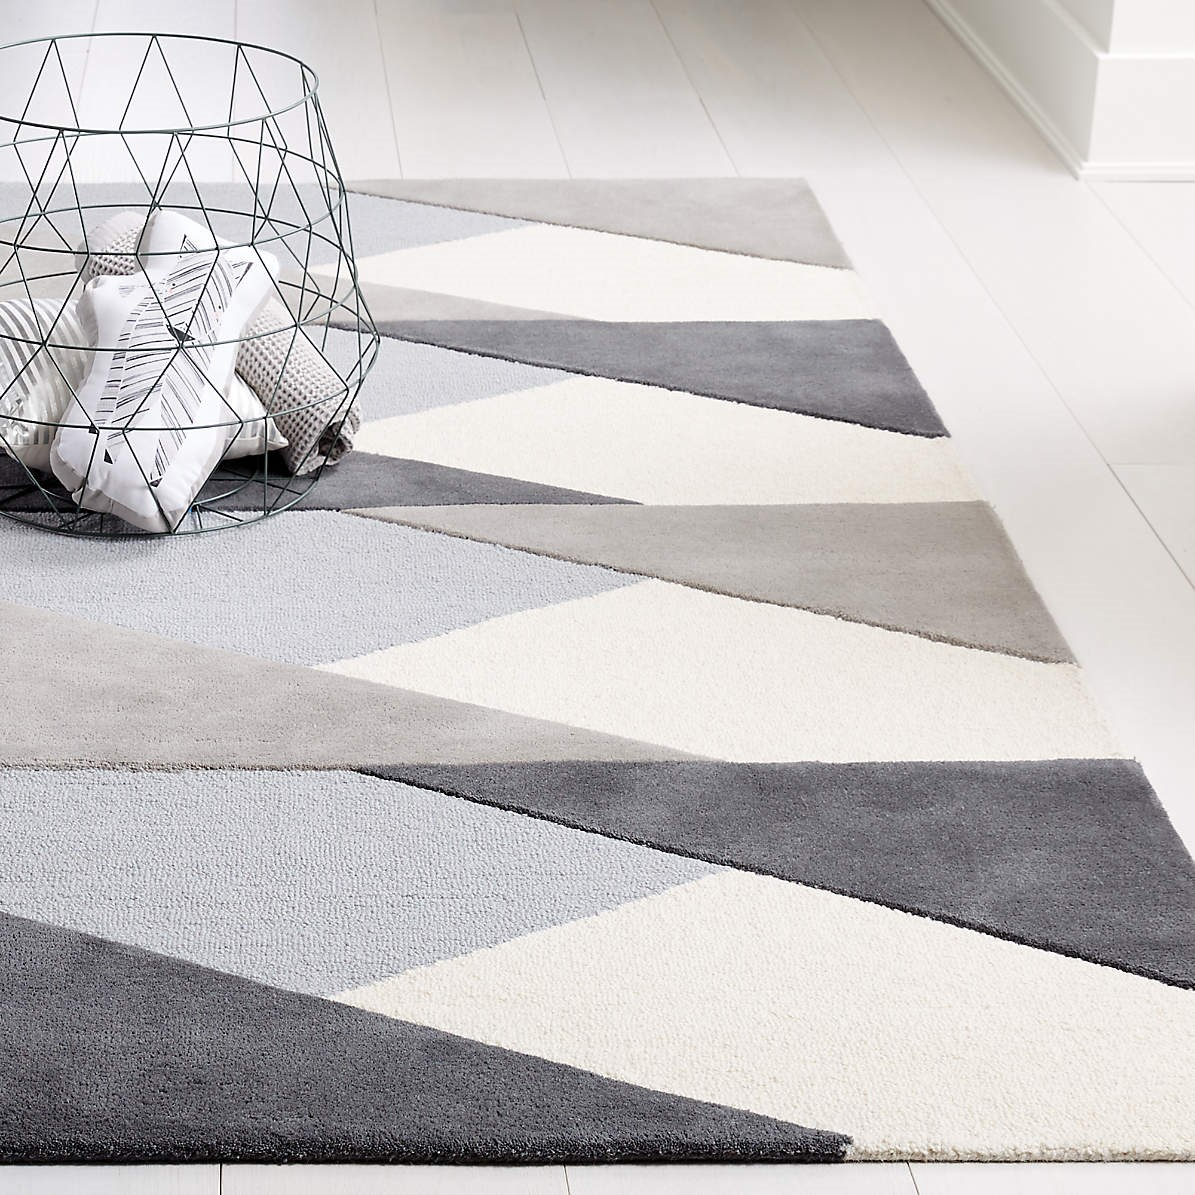 How To Choose The Best Modern Rug?